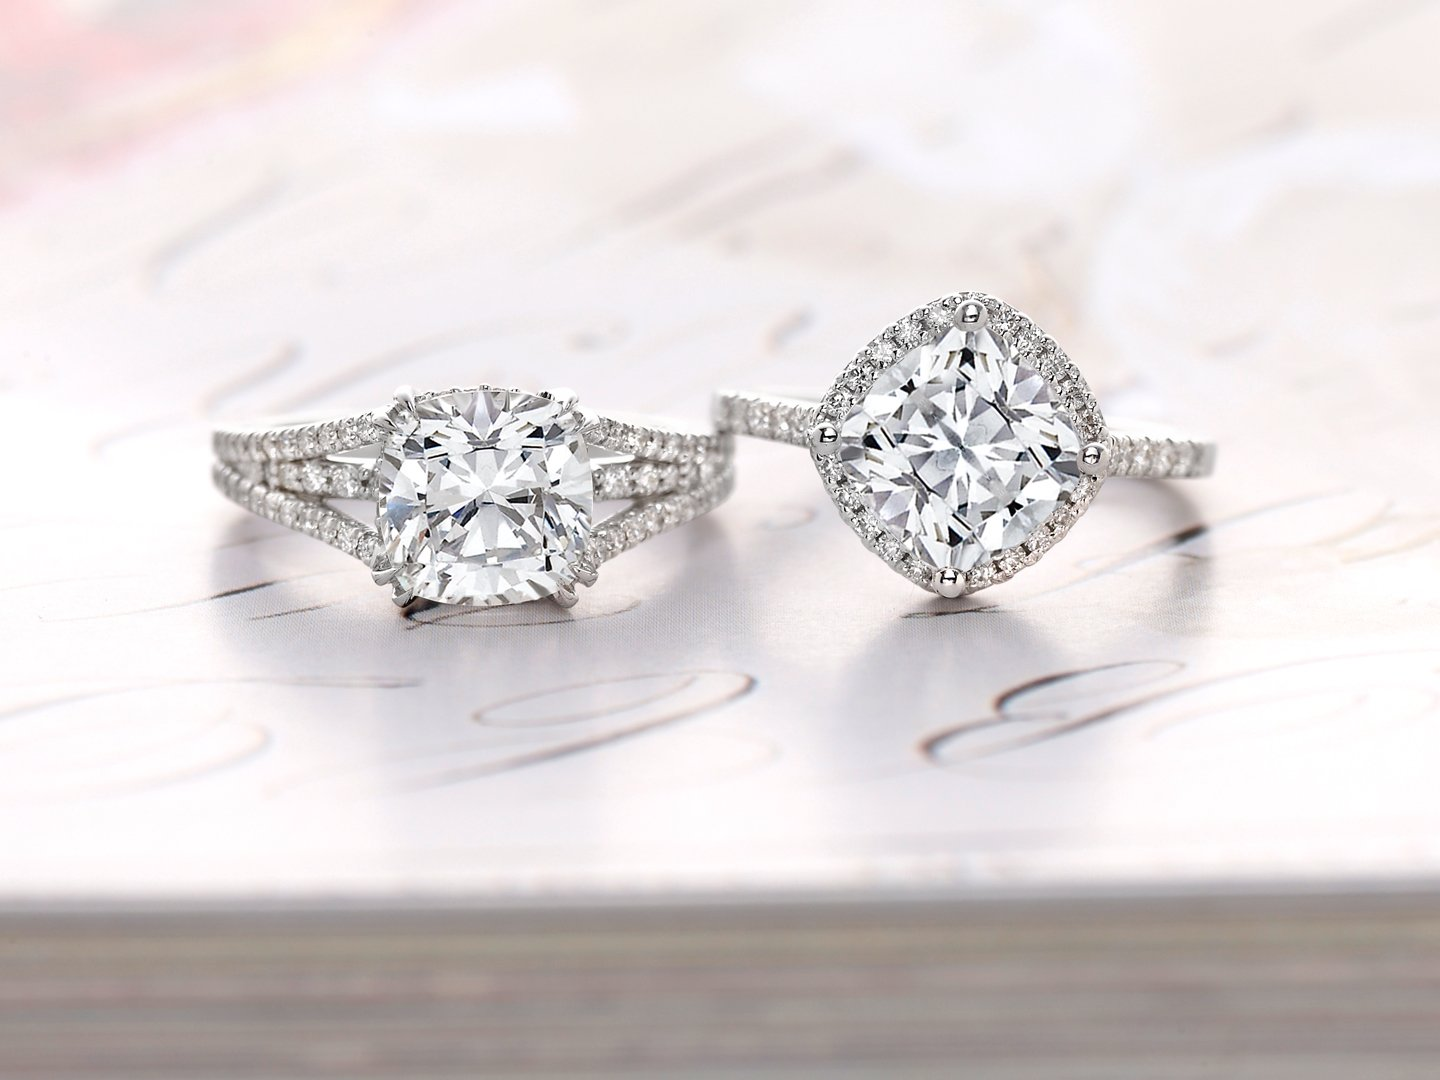 pave engagement rings brilliant earth wedding bands Diamonds are precious for many reasons they are rare billions of years old and one of the hardest materials on earth but they are perhaps most revered for